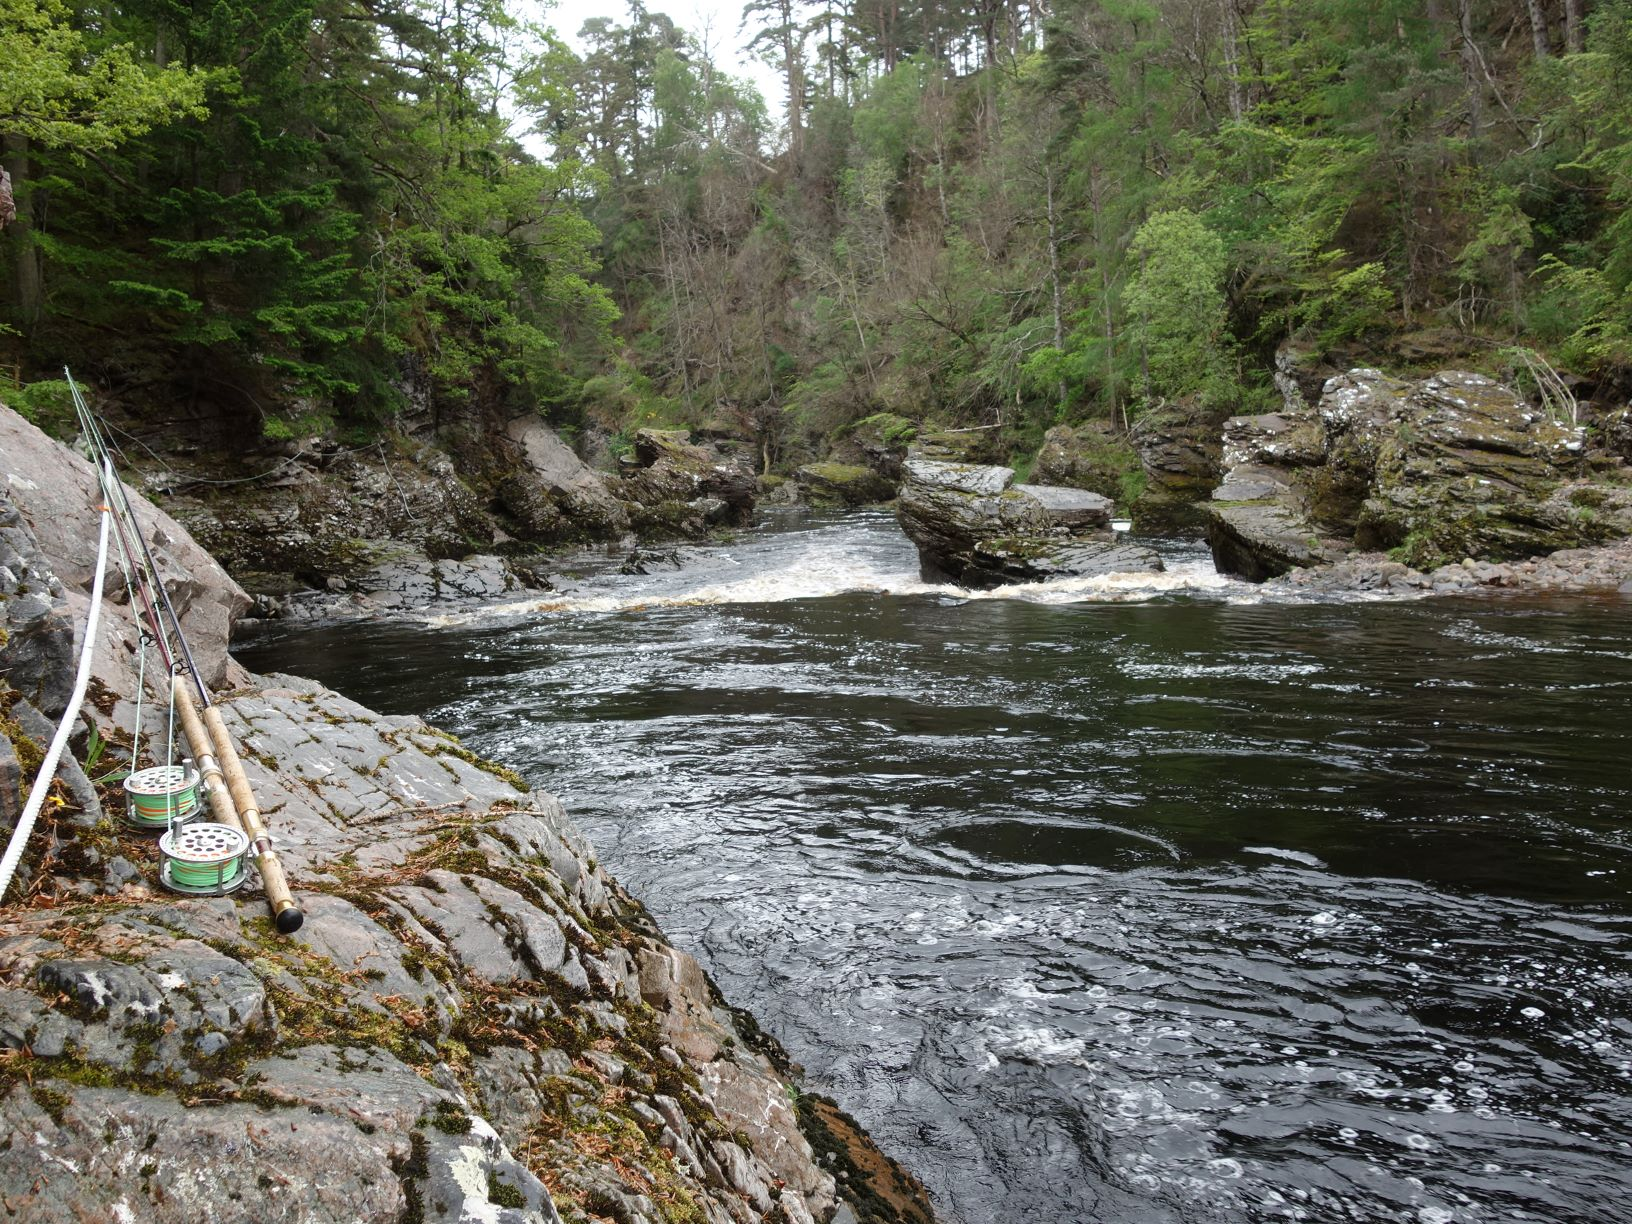 Whirling Hole, Upper Home Beat, Darnaway, River Findhorn